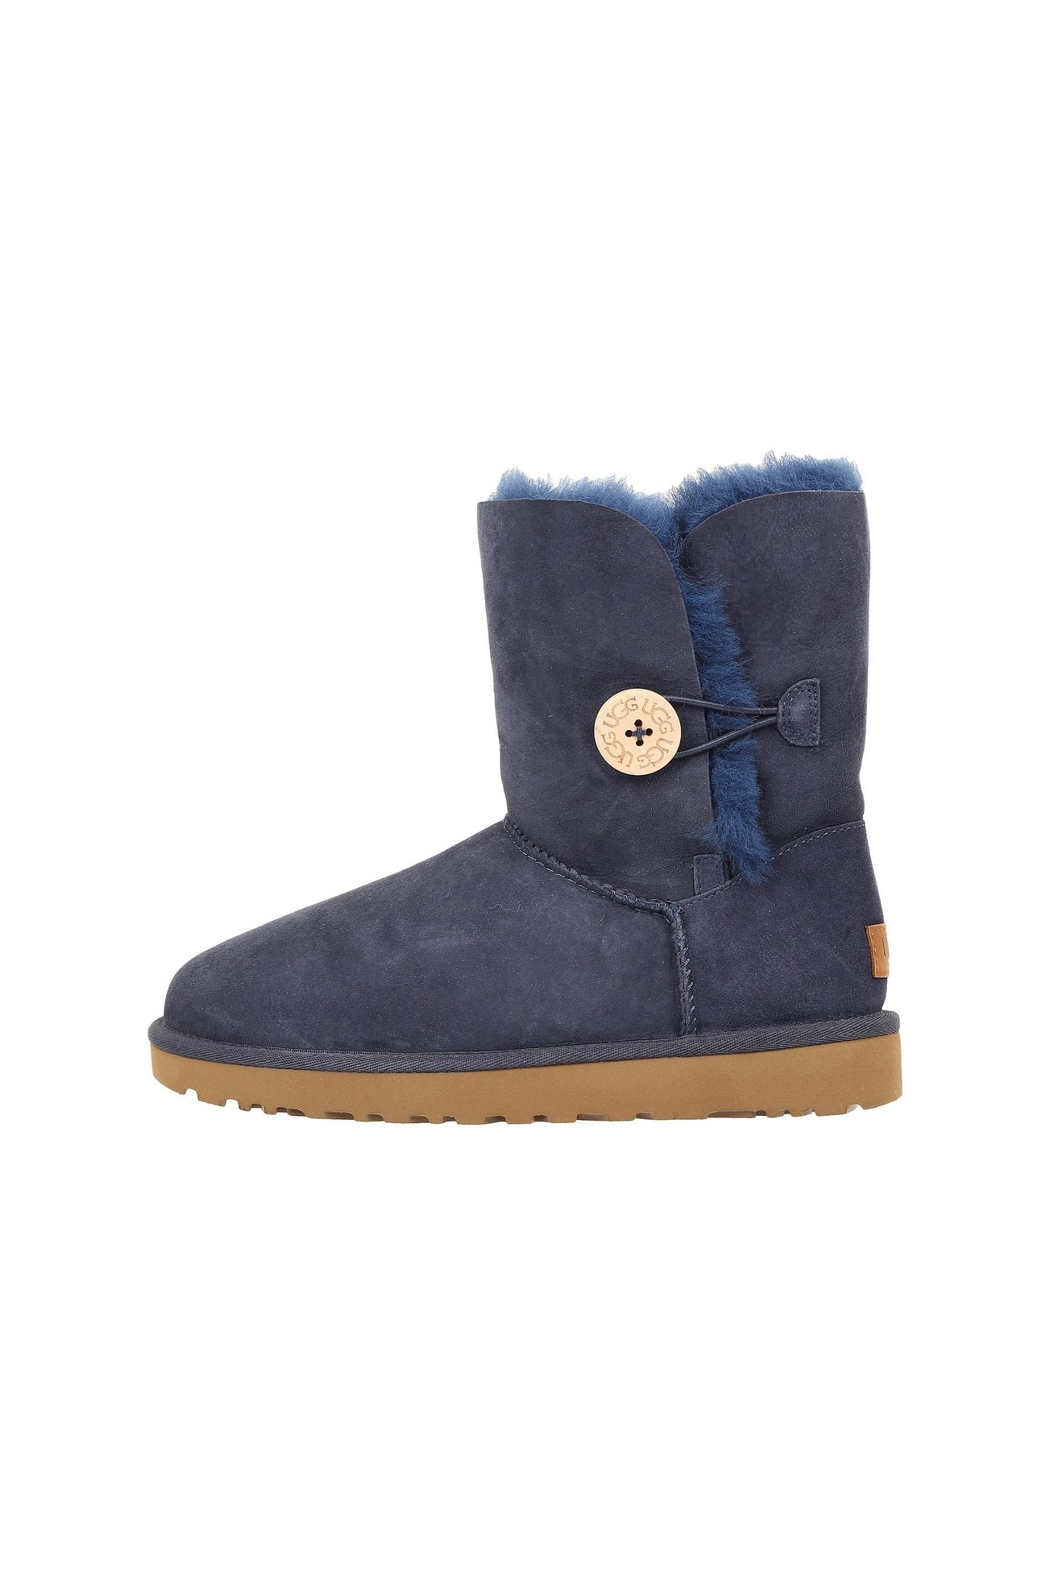 UGG Australia Women's Bailey Button-Ii - Front Cropped Image